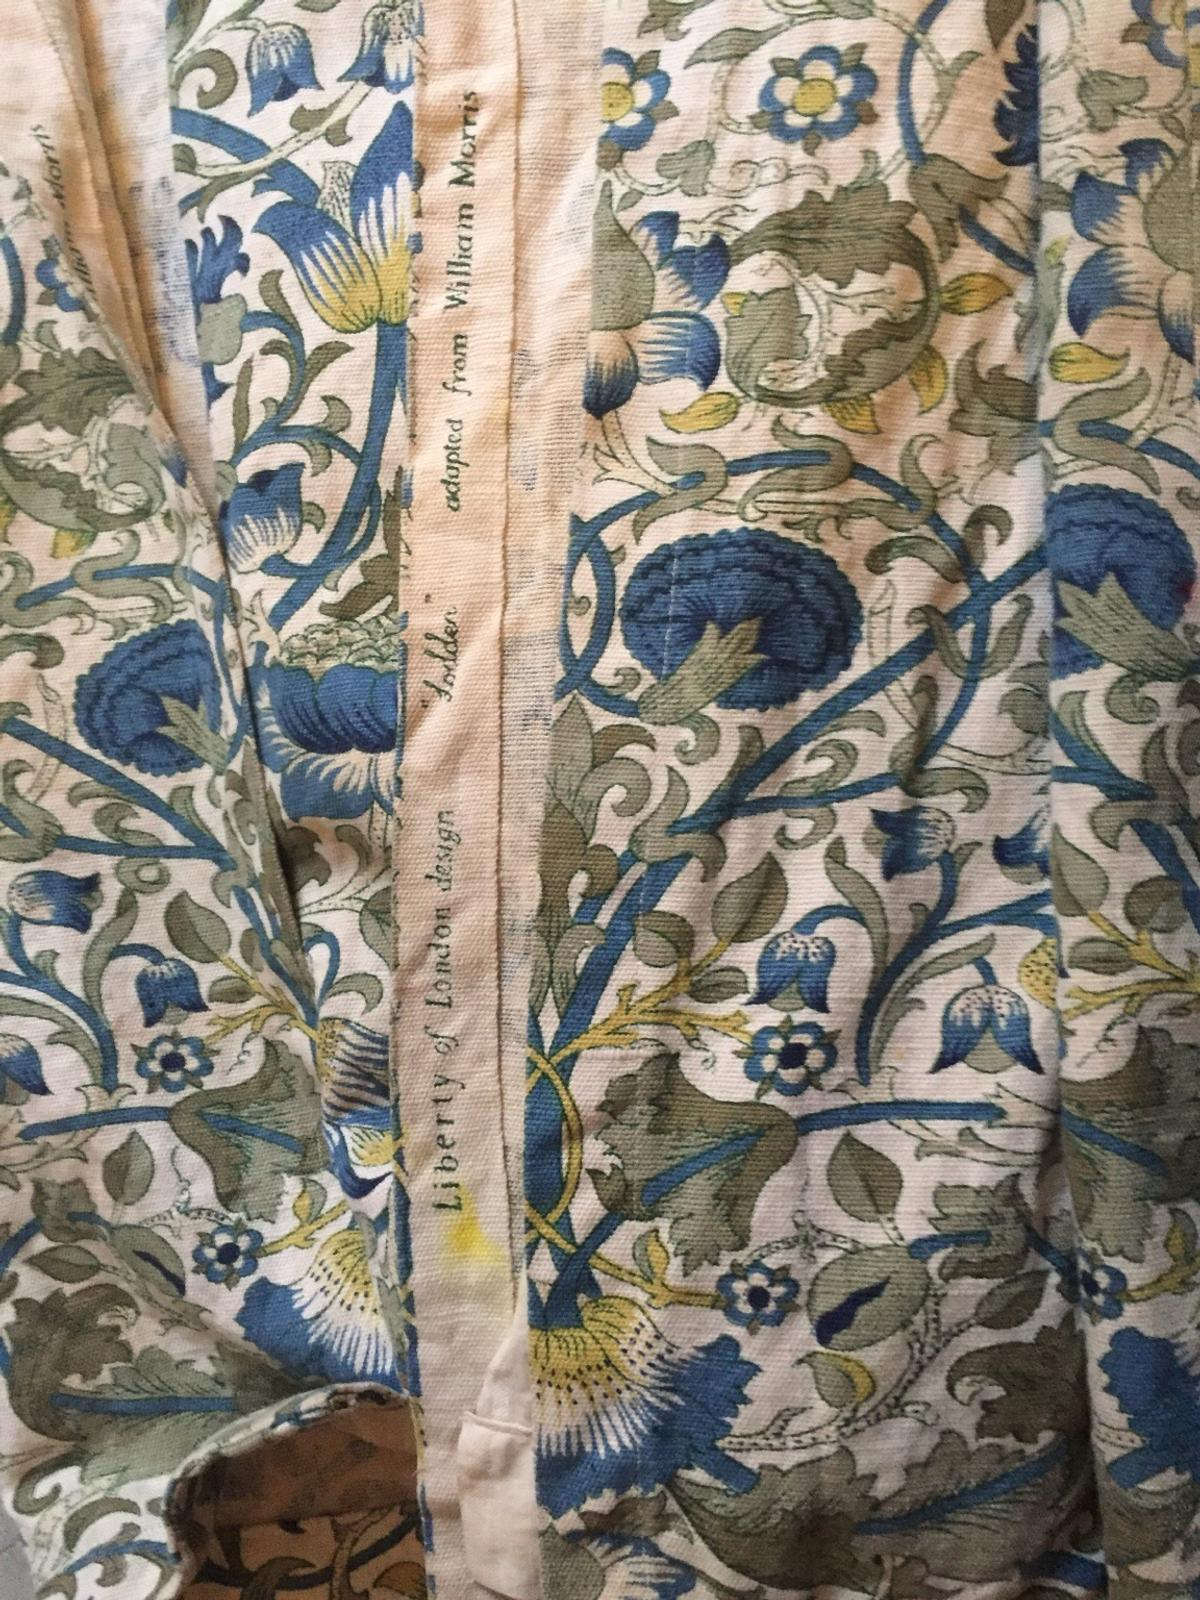 3144252a34af9 Liberty of London fabric curtains in E1 London for £100.00 for sale ...